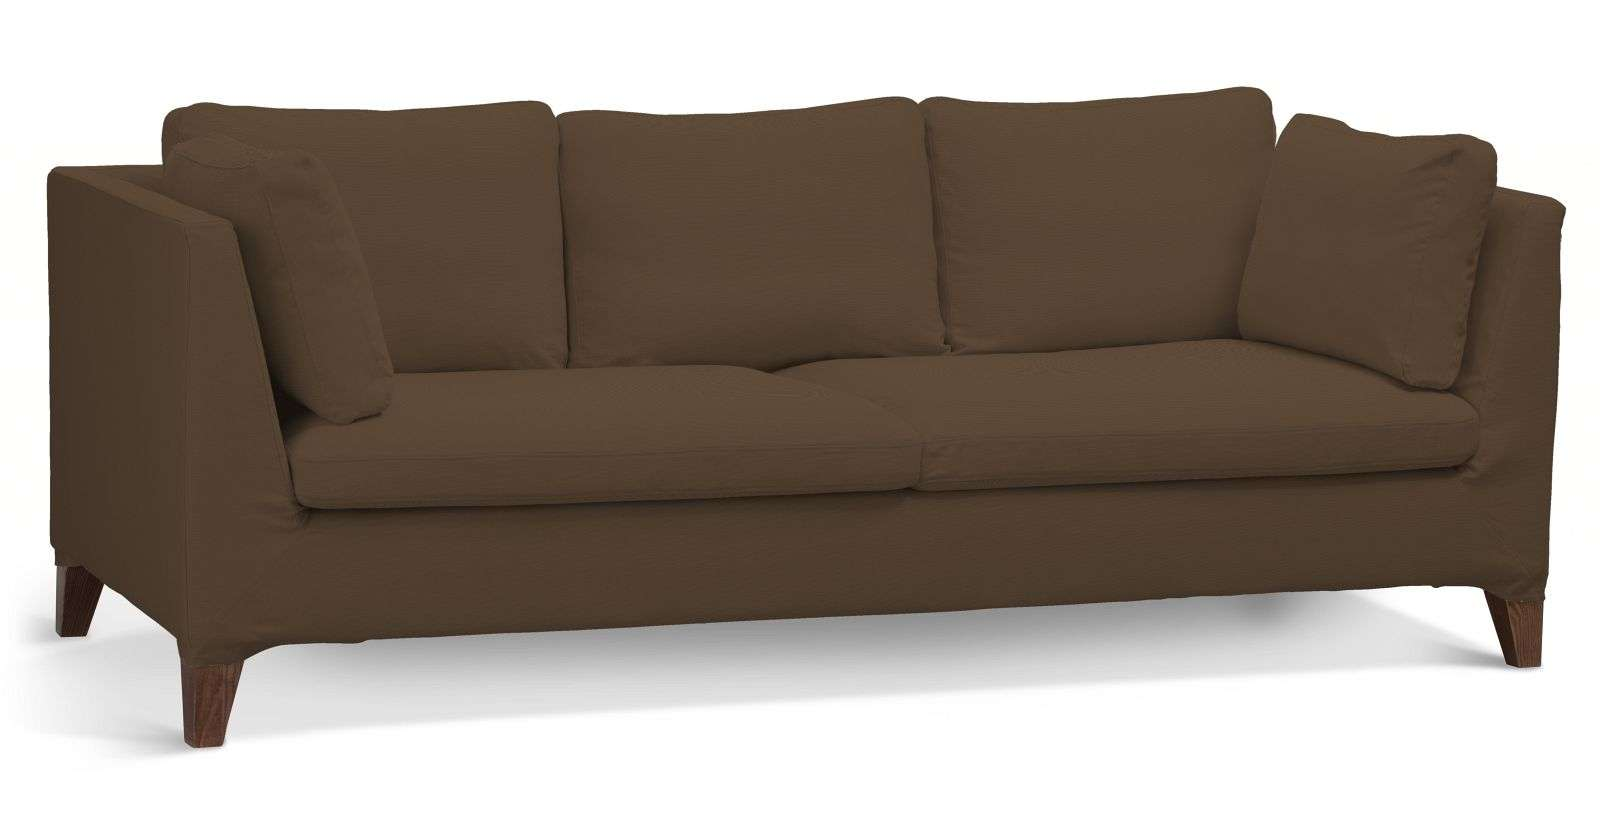 3 seater sofa cover bed for baby nursery stockholm mocca dekoria